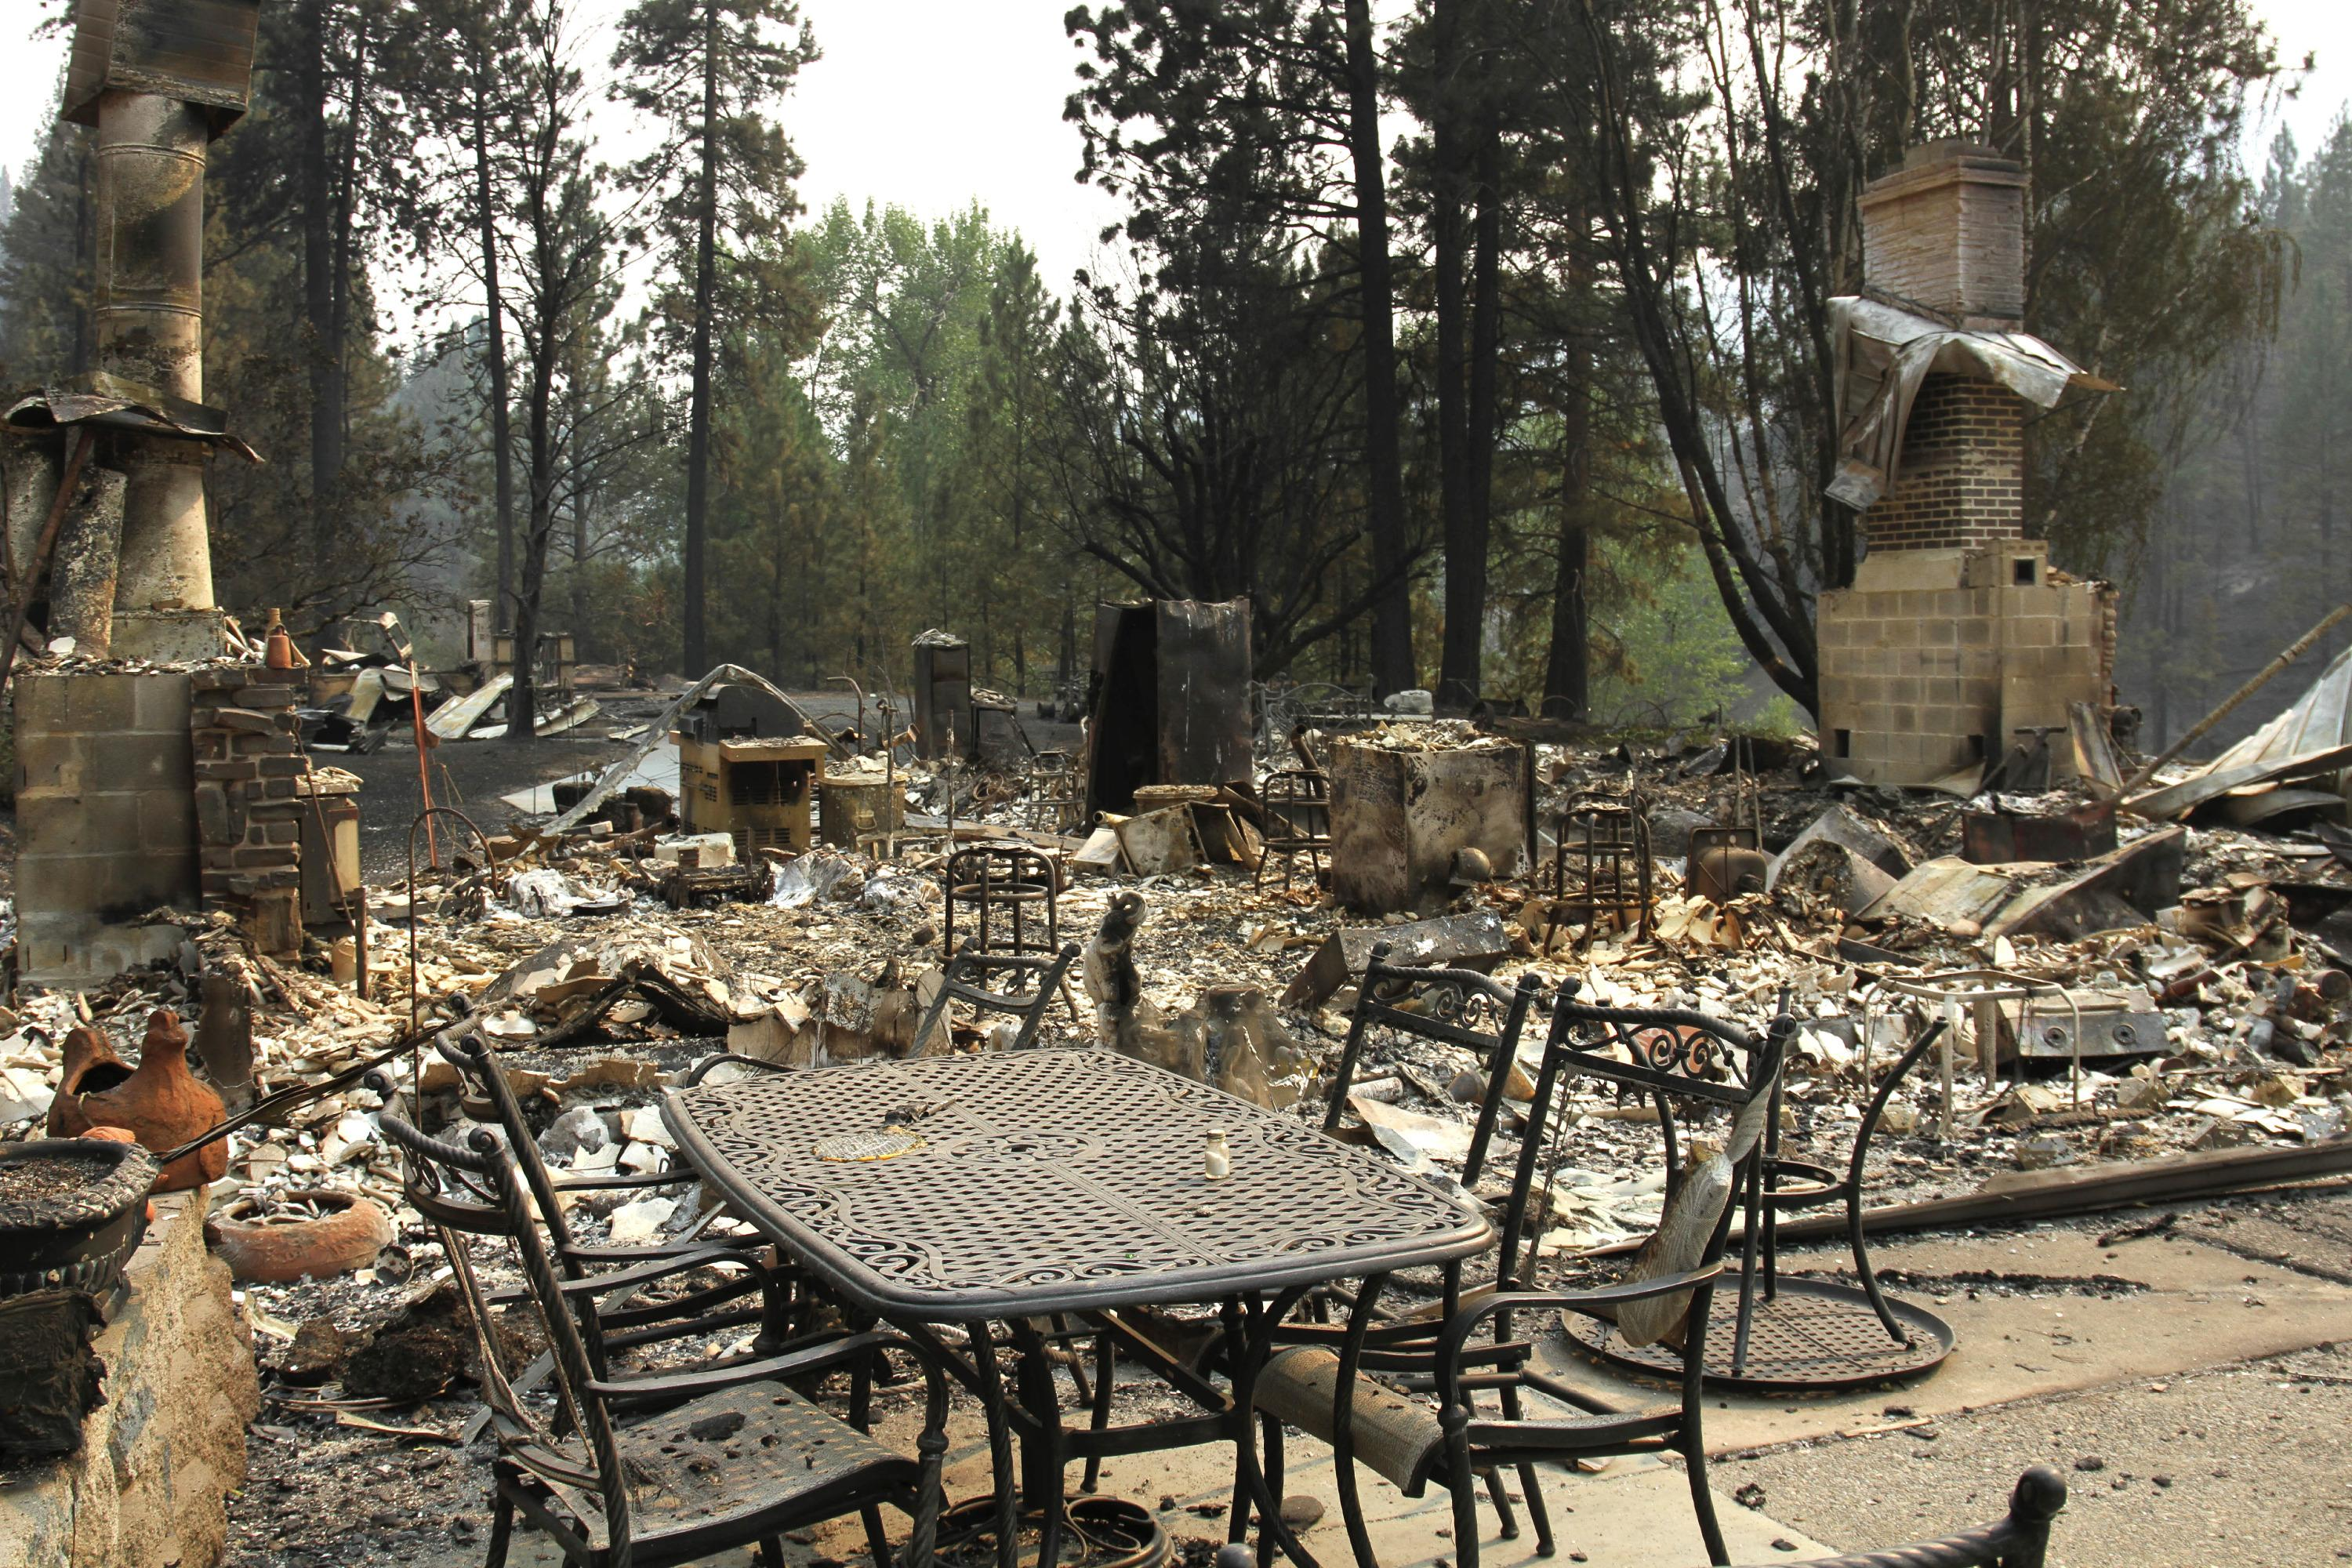 President Obama on Friday declared a state of emergency for Washington and ordered federal aid to supplement ongoing response efforts, as a massive complex of blazes in north-central Washington state grew by more than 100 square miles in a day.